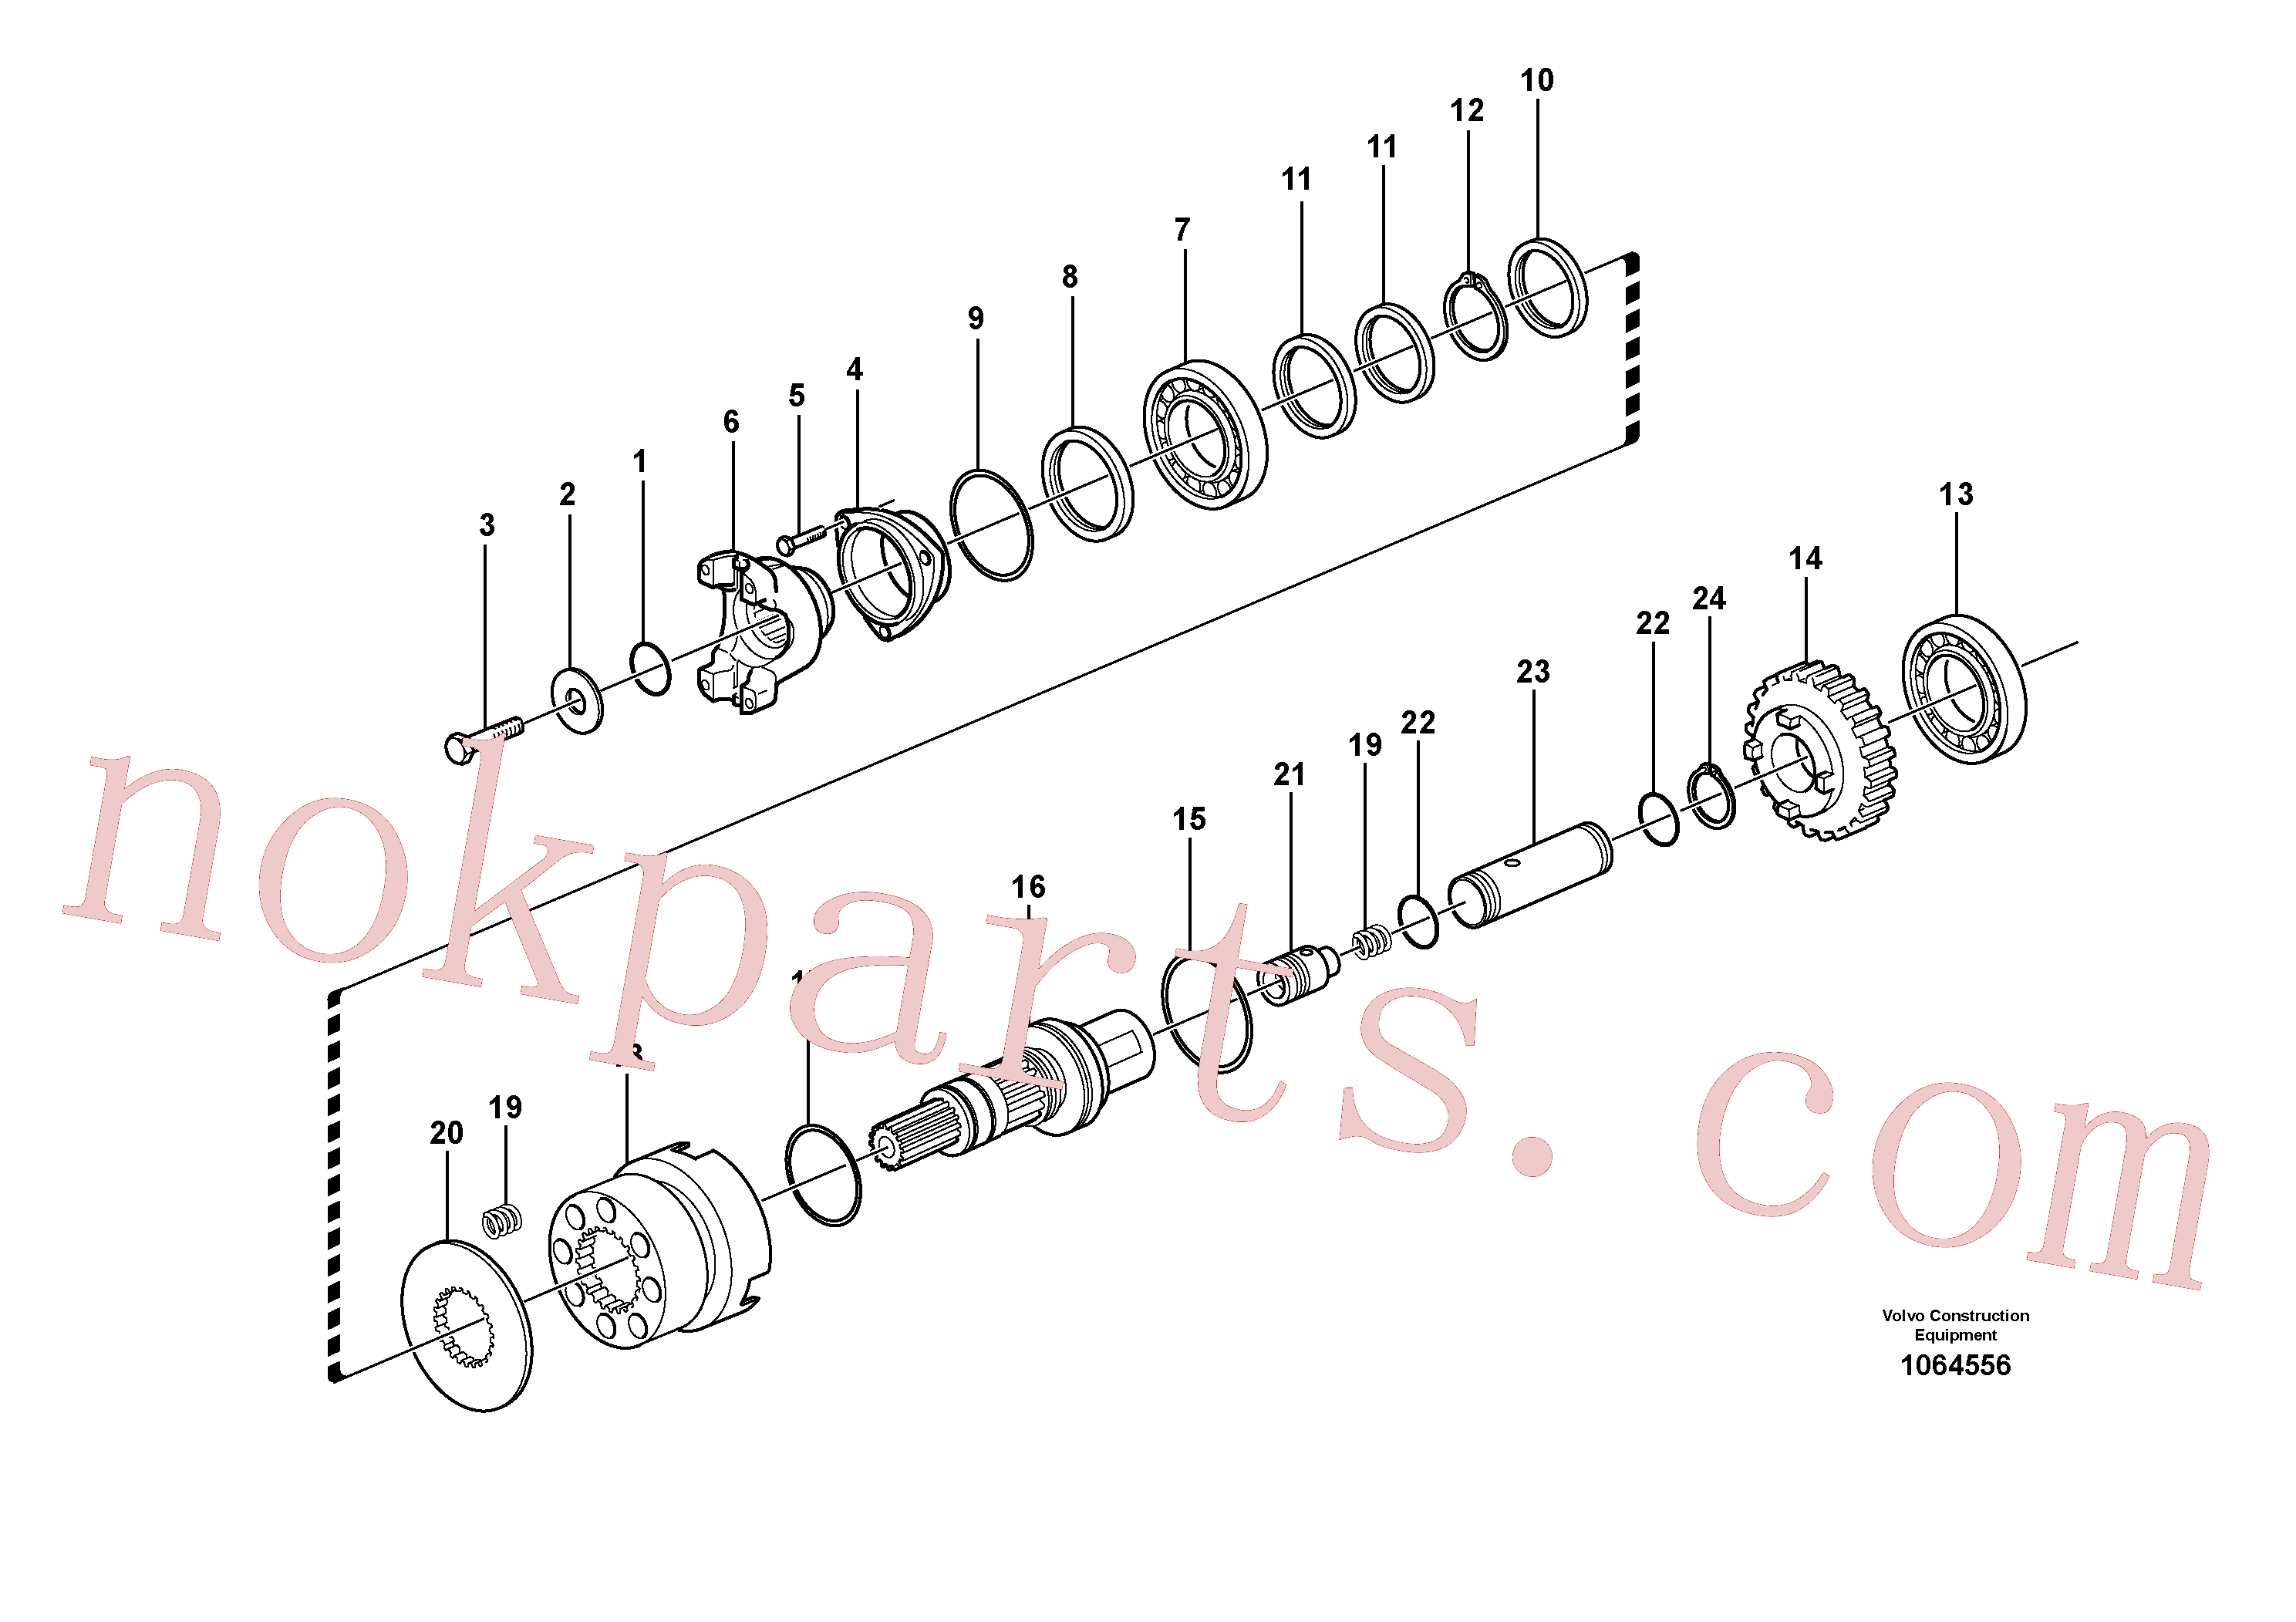 VOE15086029 for Volvo Axle, four-wheel drive, Hydraulic clutch, 4wd(1064556 assembly)